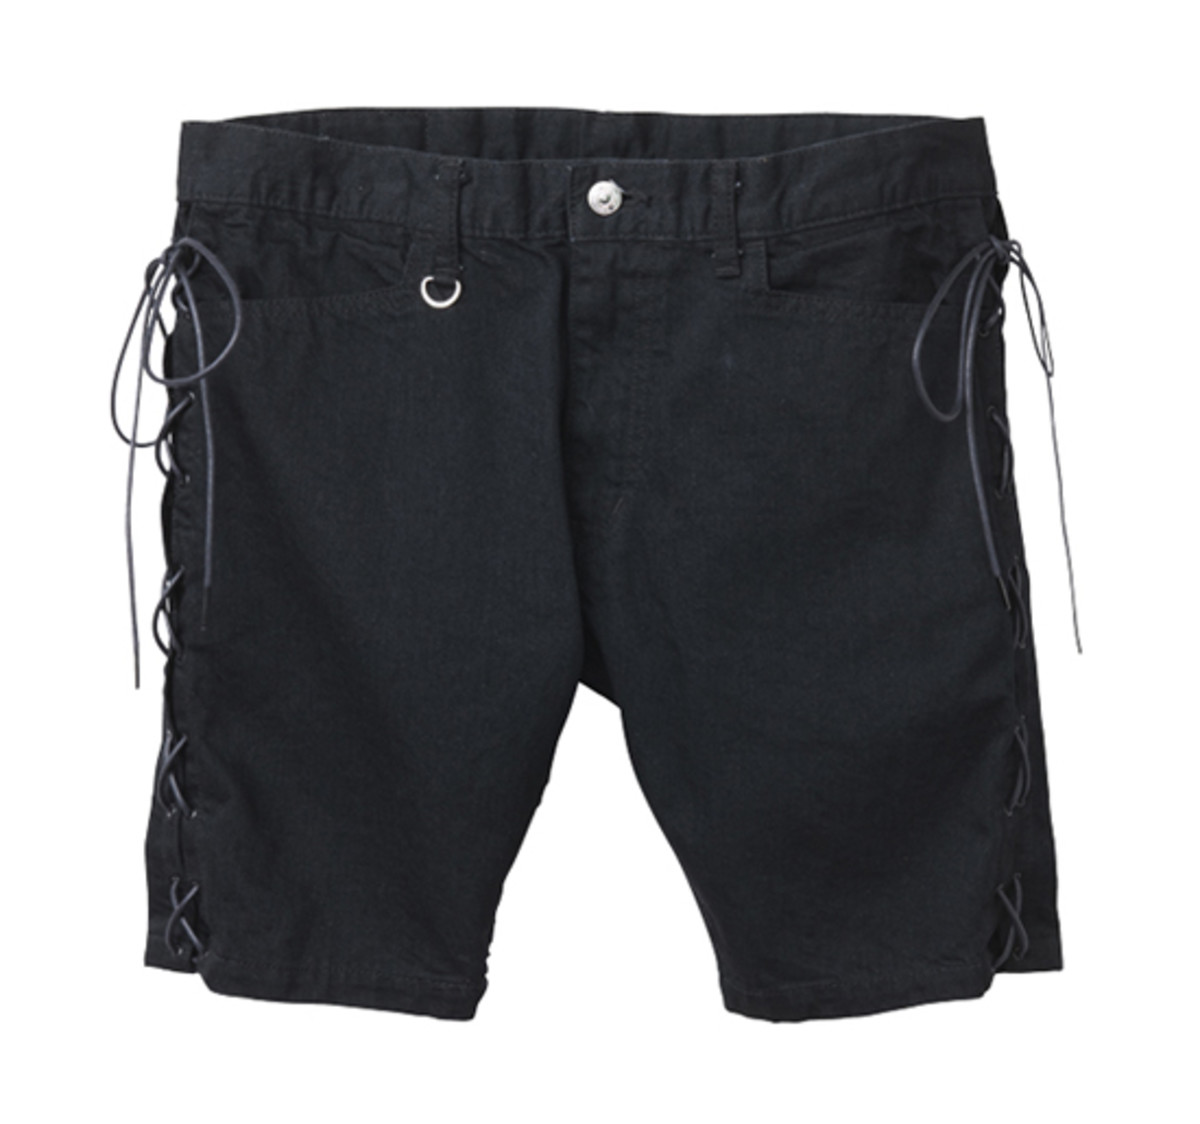 M.E.T.A.L. Denim Shorts Black